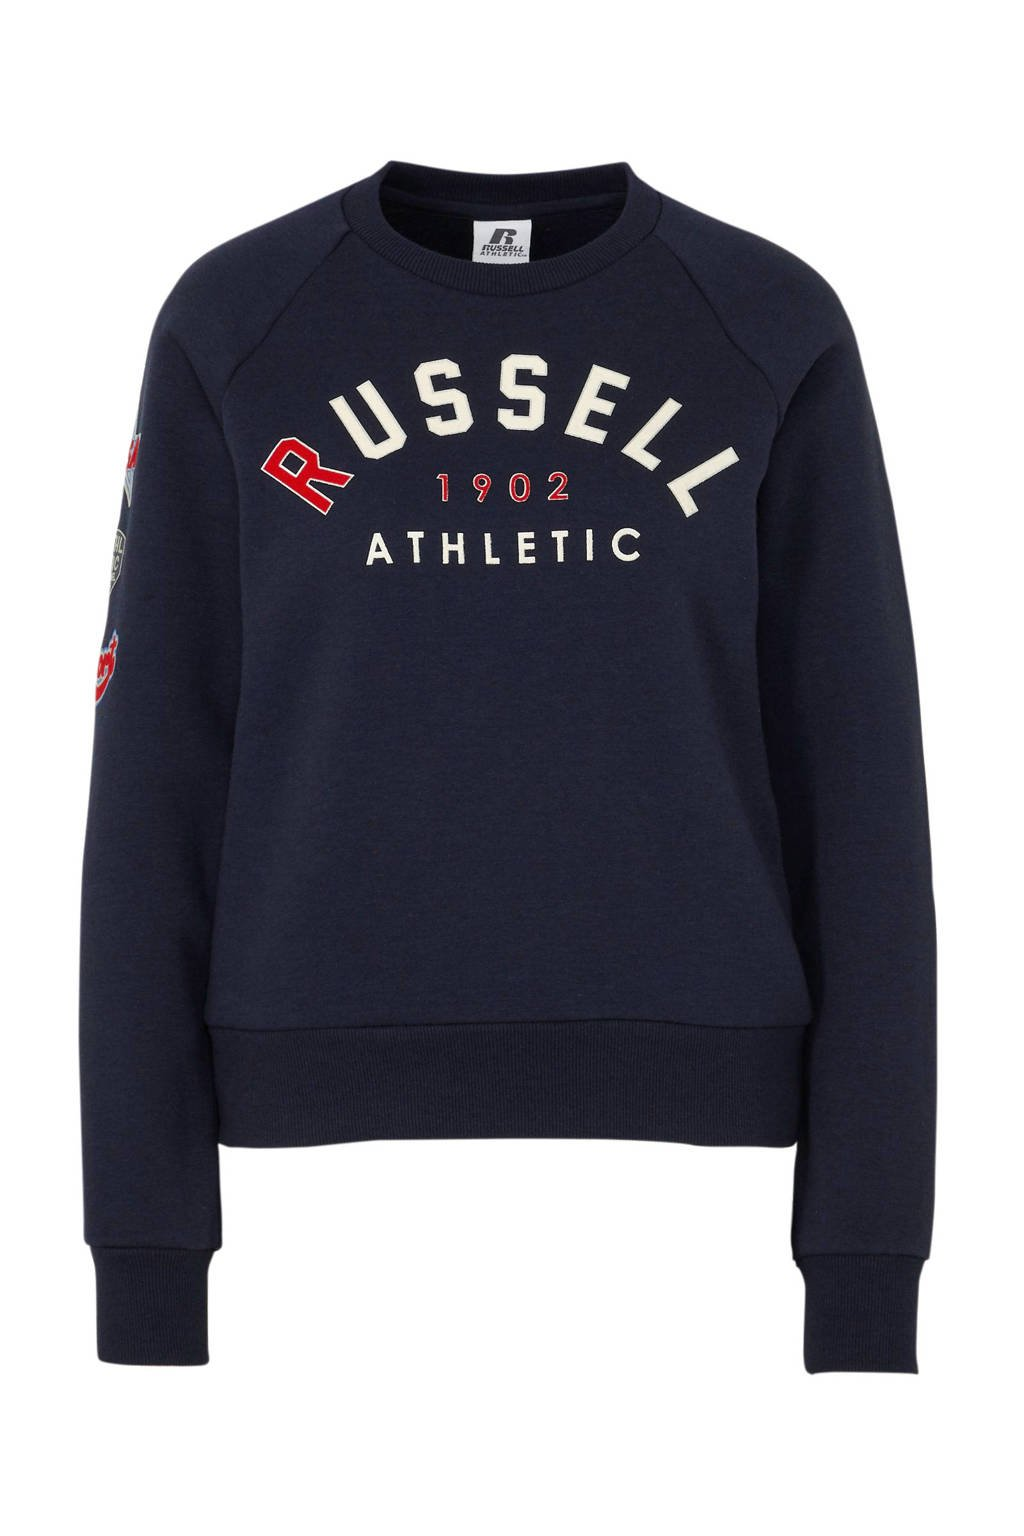 Russell Athletic sportsweater donkerblauw, Donkerblauw